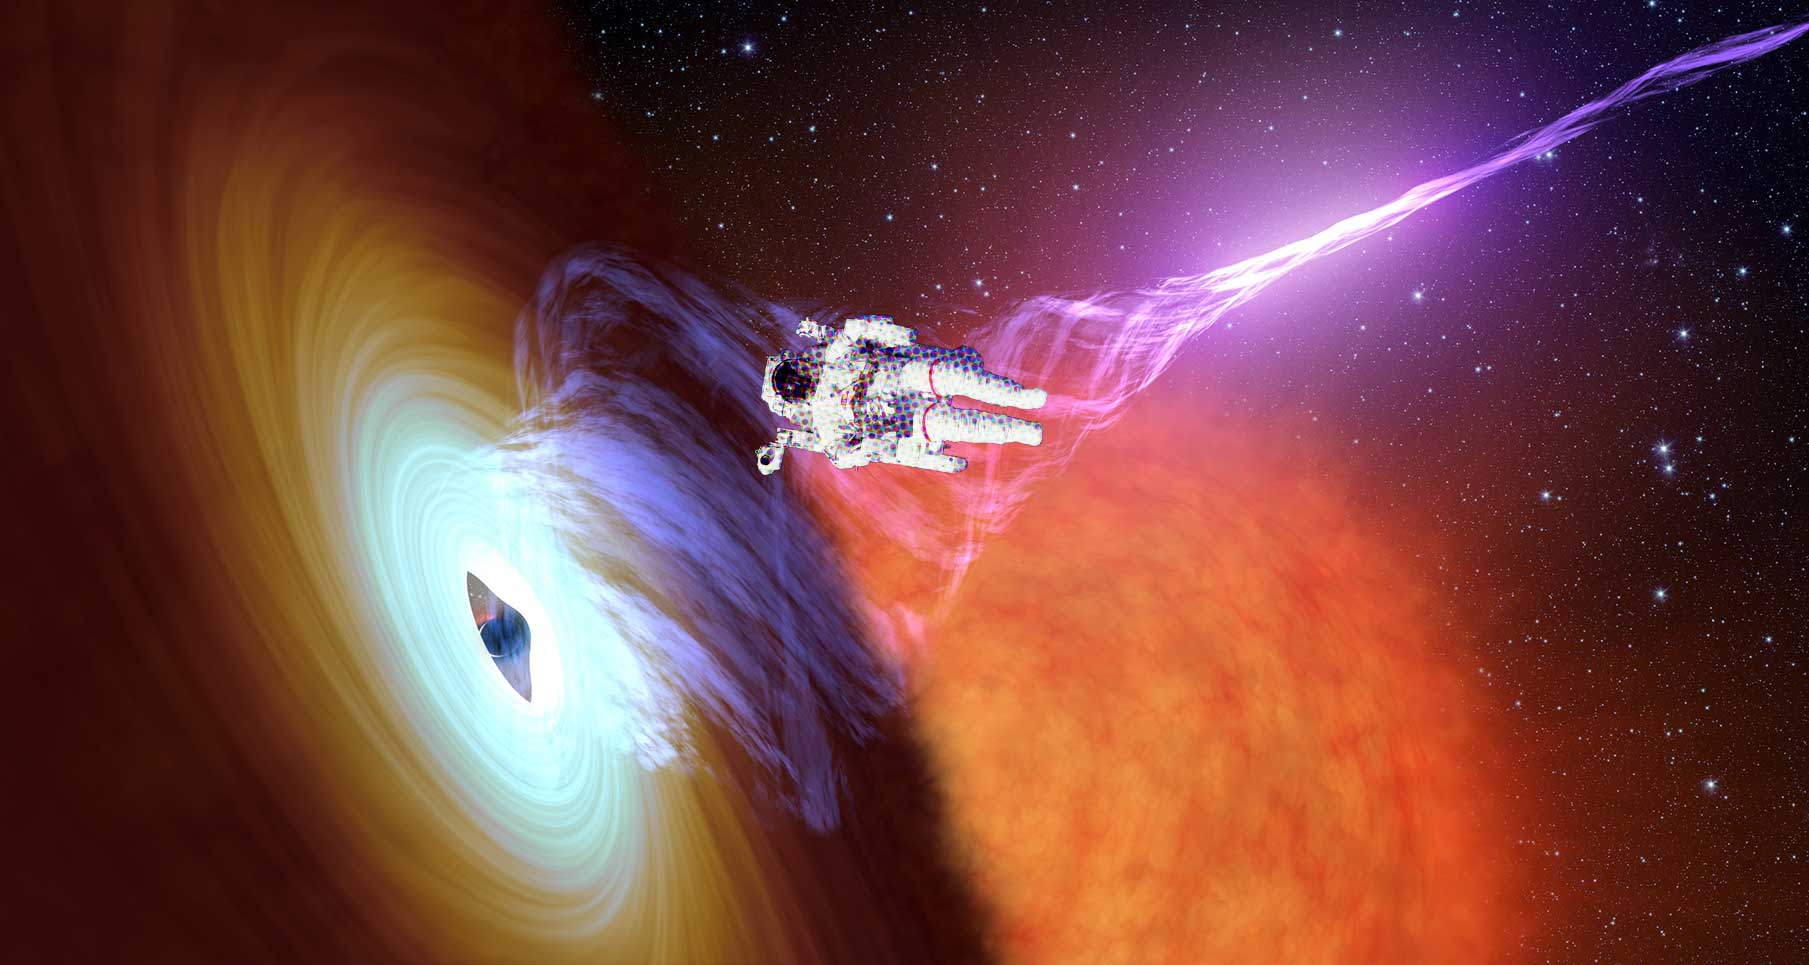 """Here's How You Could Survive Being Sucked Into a Black Hole. """""""